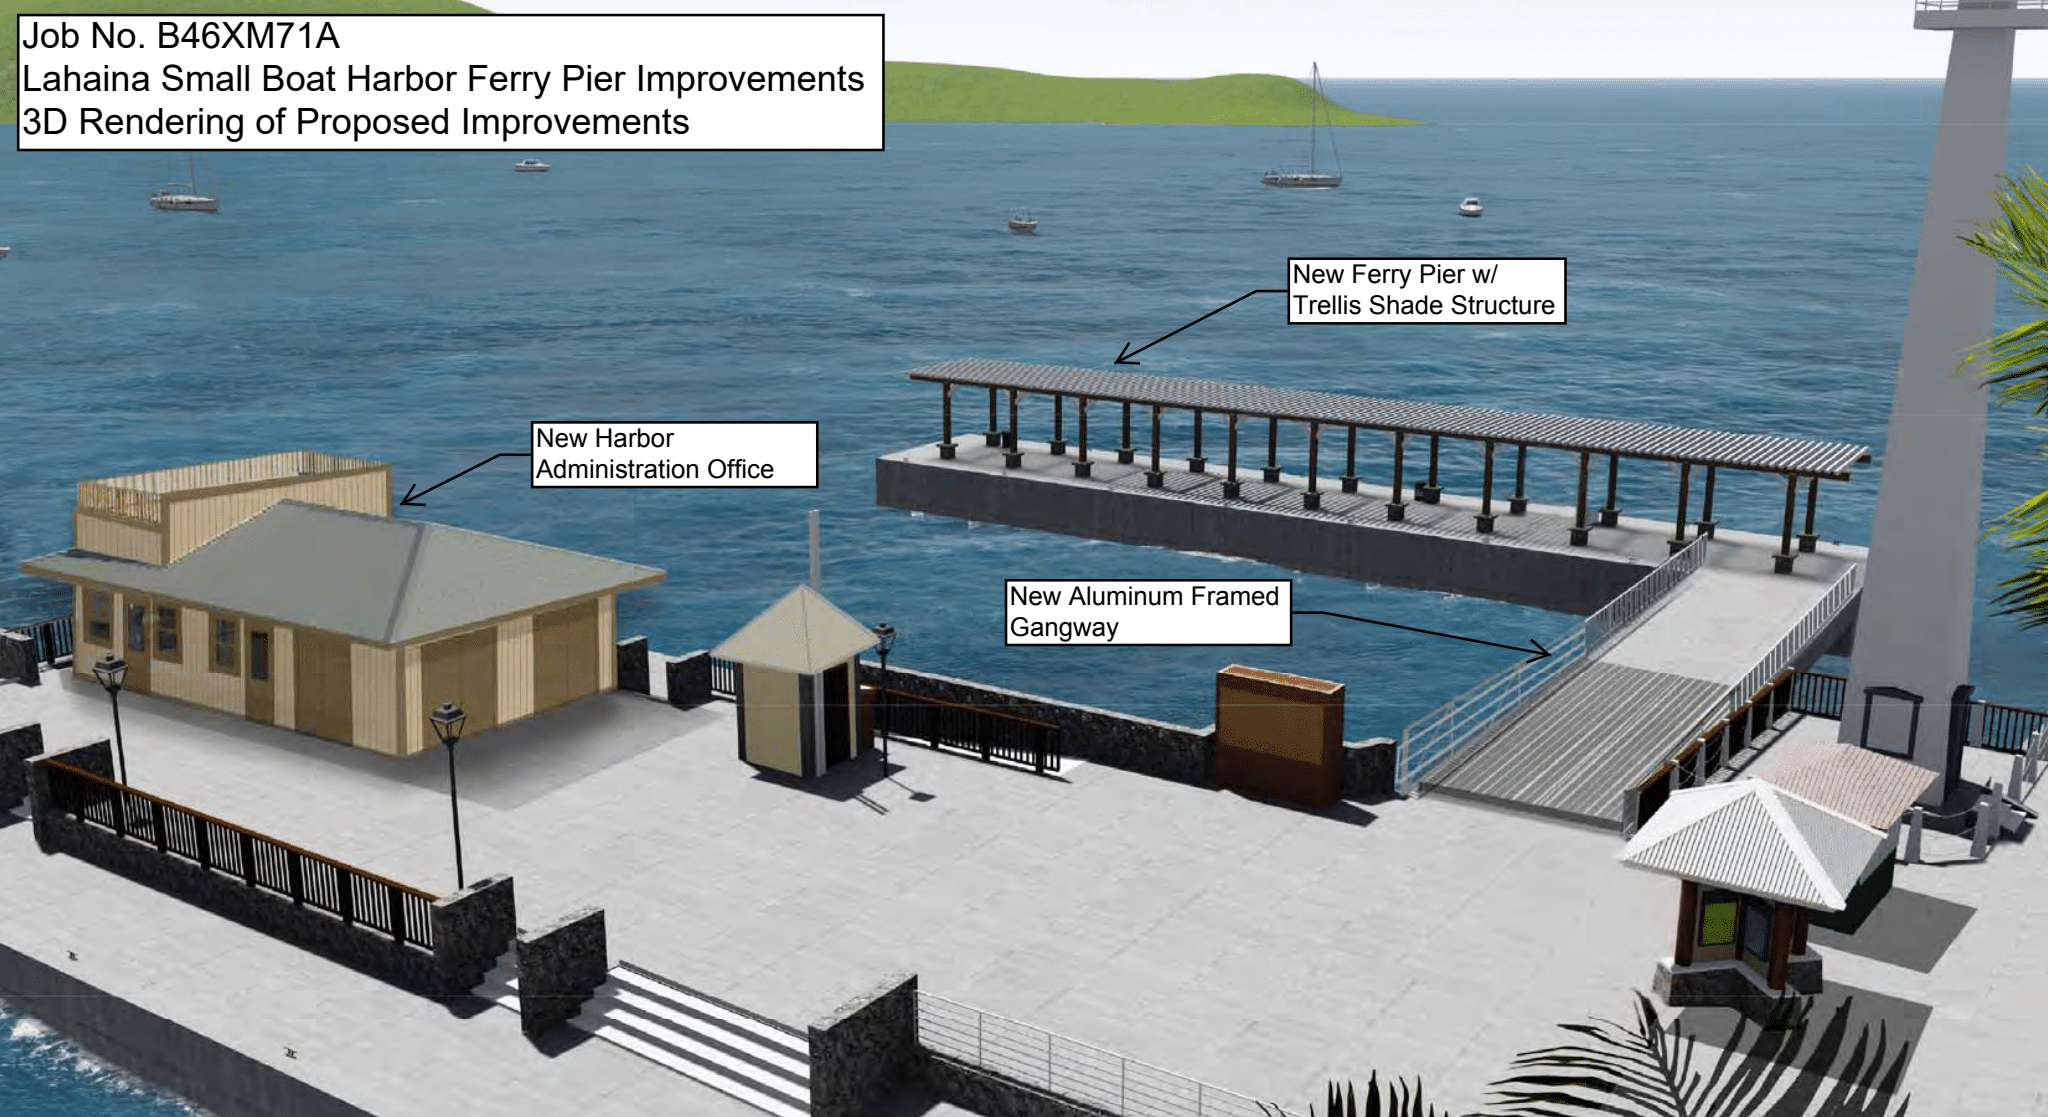 $18M Ferry Pier Improvement at Lahaina Small Boat Harbor to Start April 5